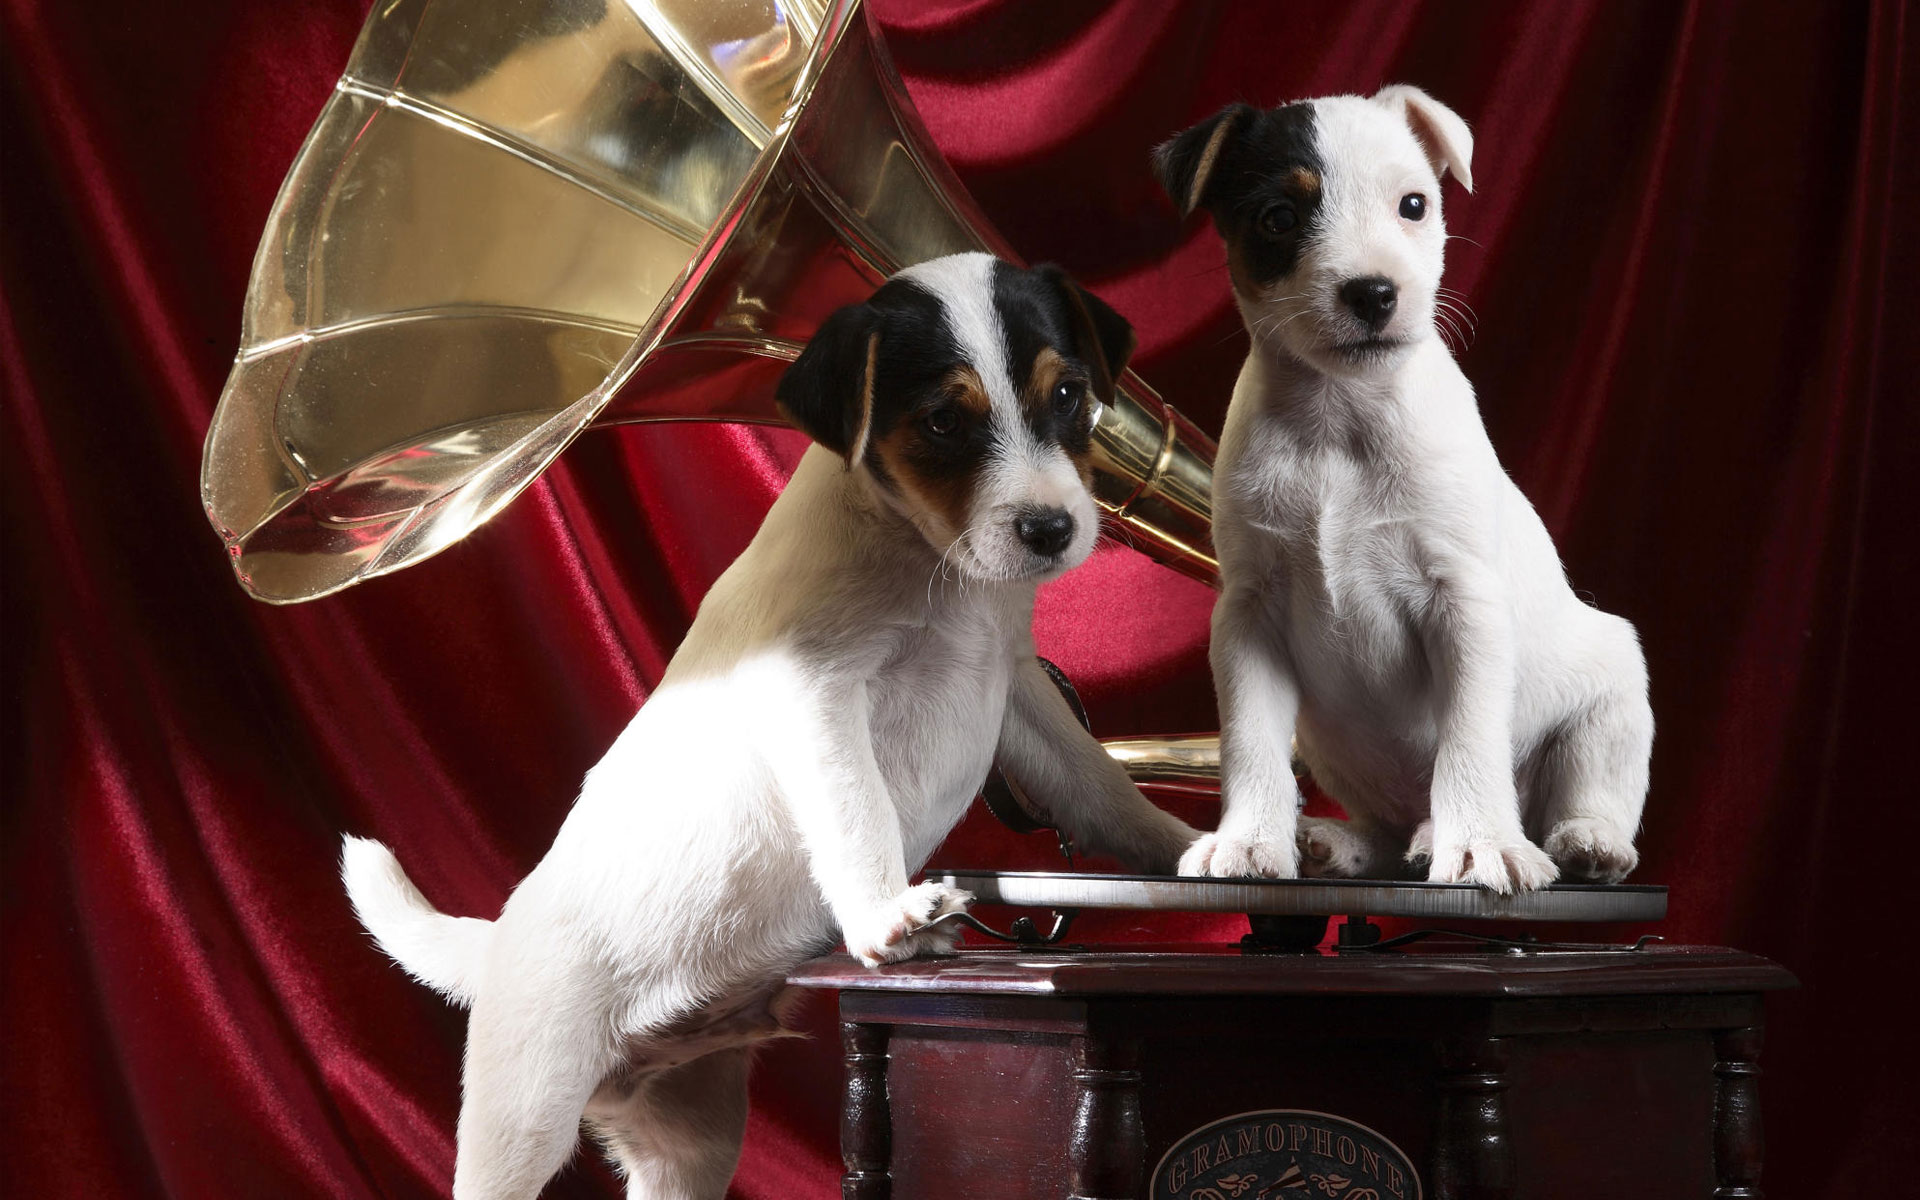 HD Wallpapers Gramophone Pups